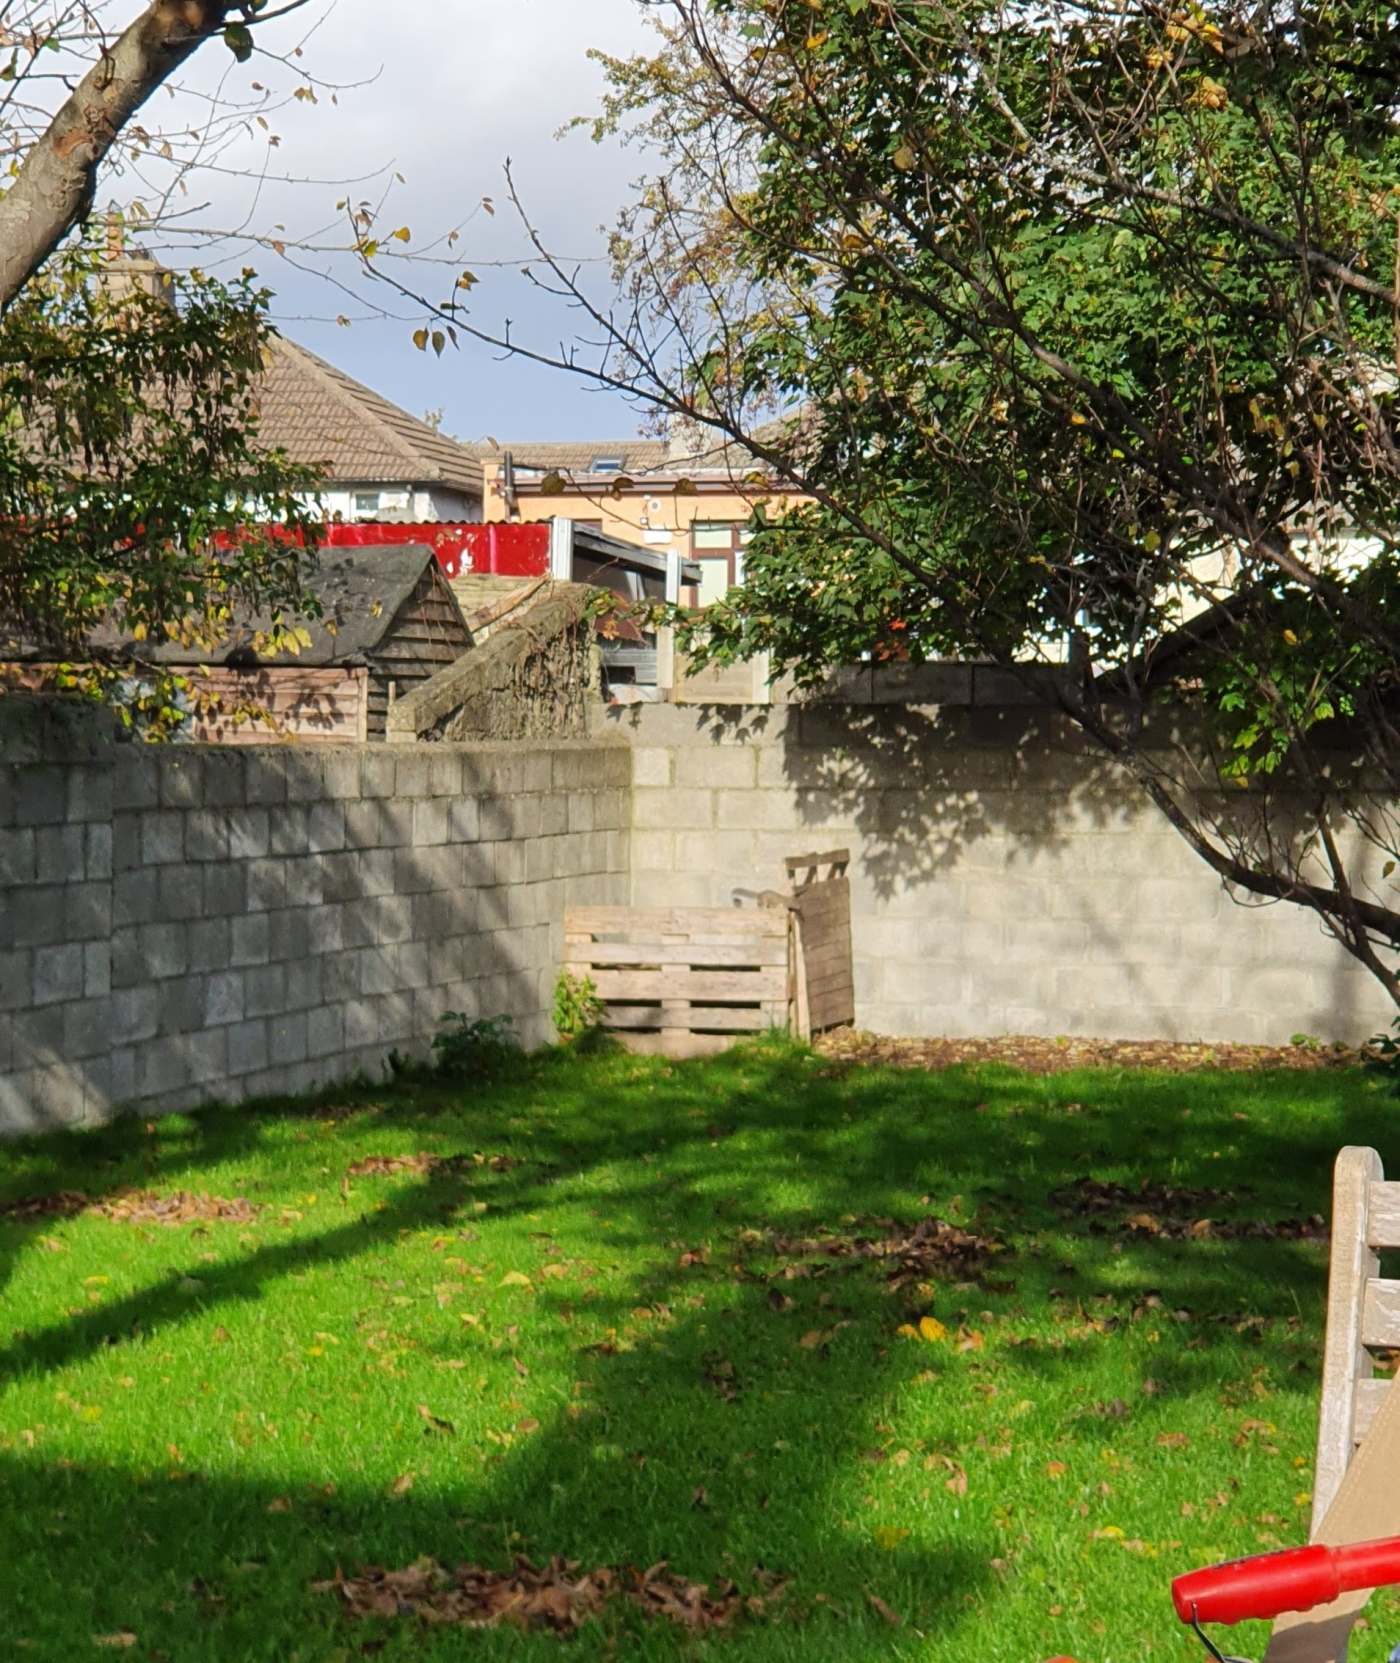 A backgarden lawn, with piles of leaves and shade from trees